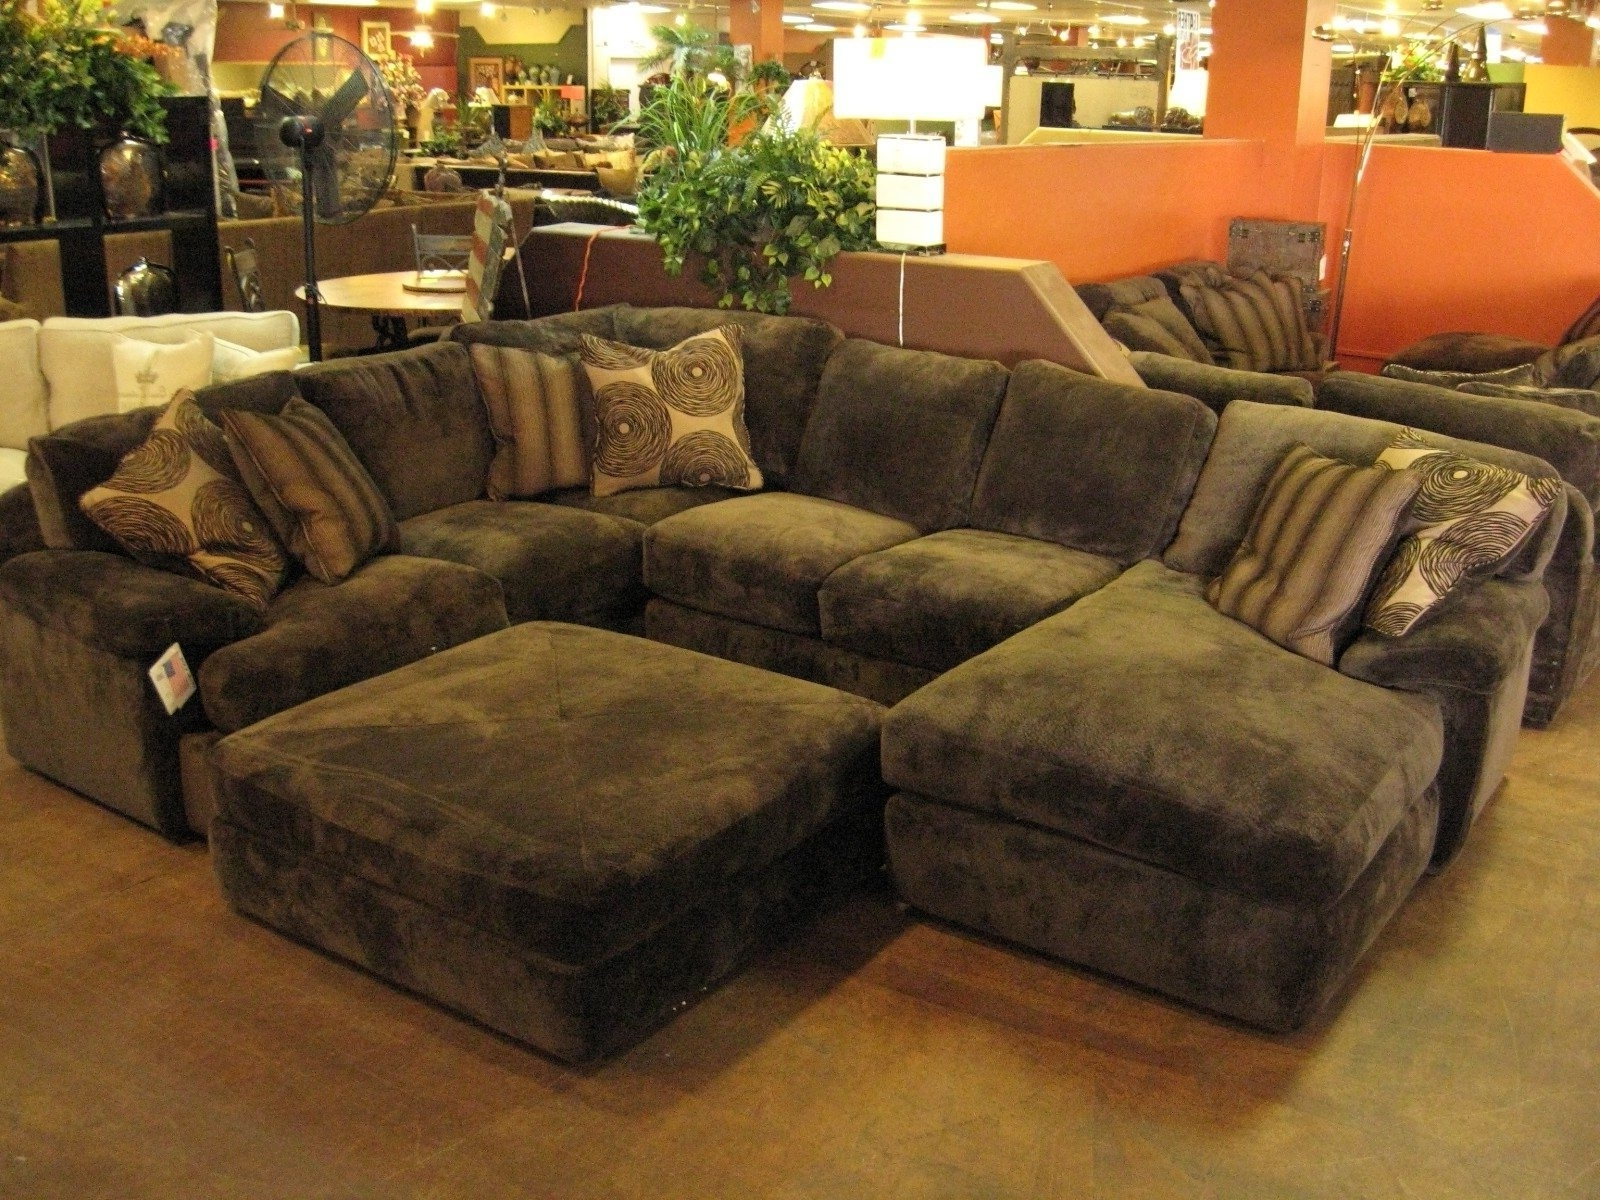 Sleeper Sofa Sectionals With Chaise Inside Most Popular Sofas: Sectional Sleeper Sofa (View 10 of 15)